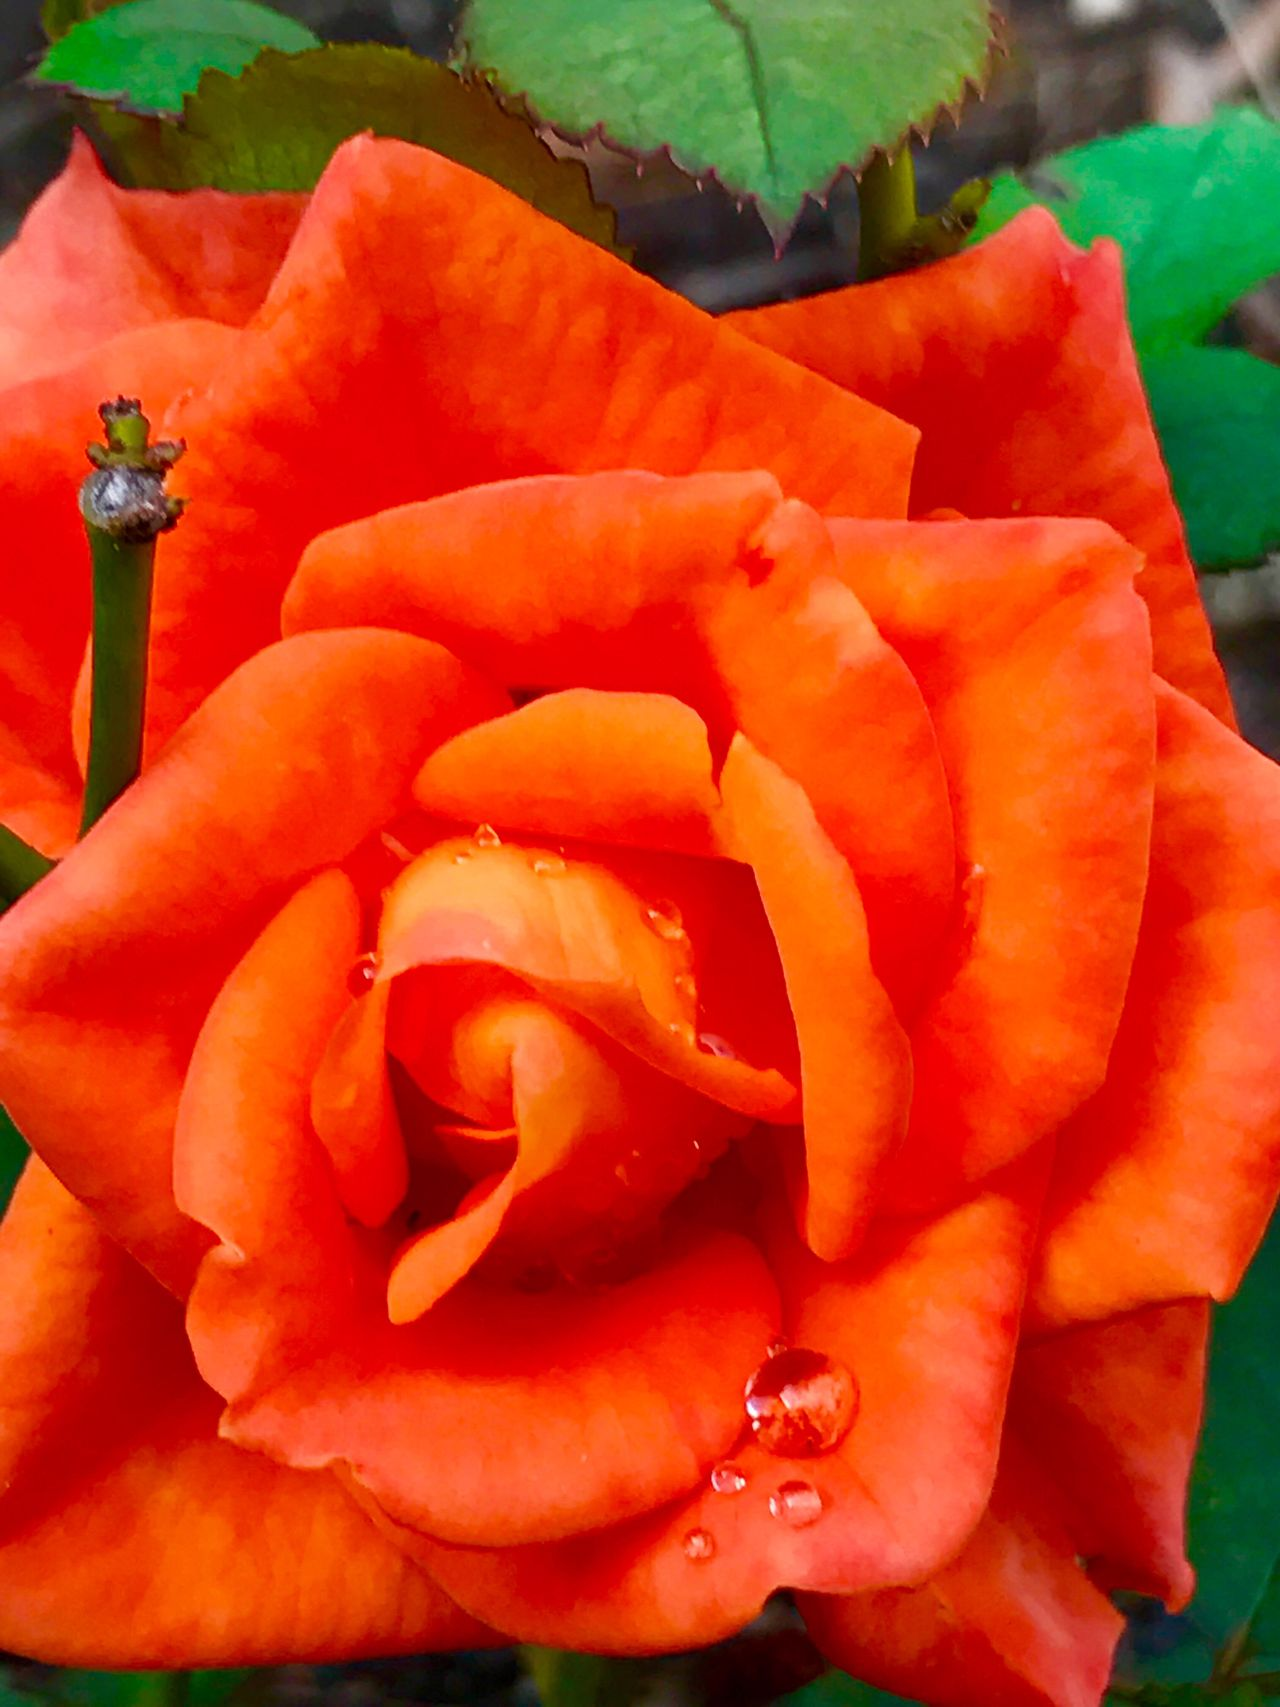 Close-up Orange Color Rose🌹 Flower Flower Head Blooming Petal Fragility Nature No People Plant Outdoors Day City Lights And Shadows Focus On Foreground Sunlight Water Droplets